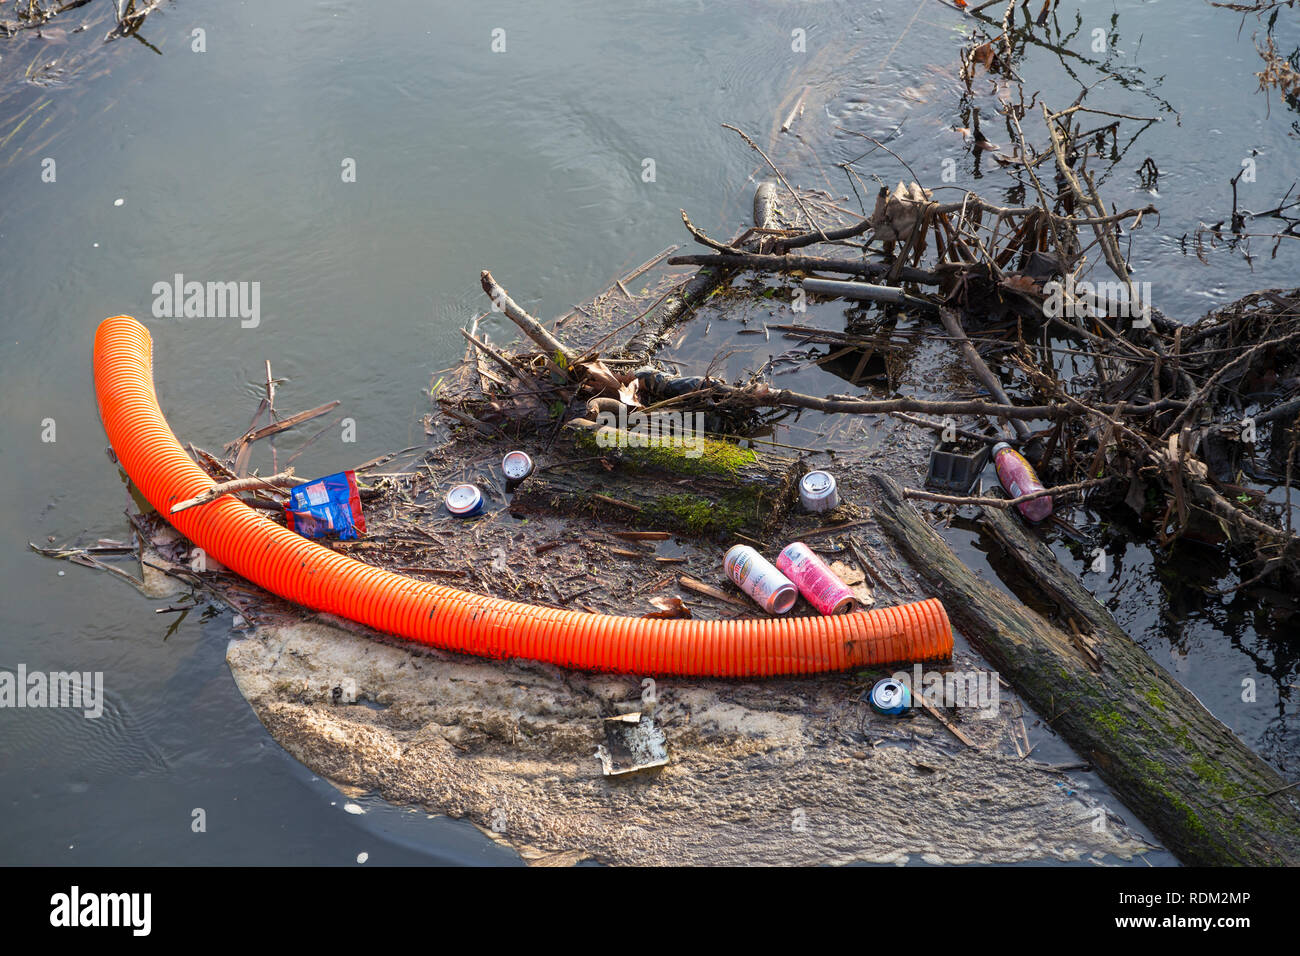 Rubbish dumped in a river, uk - Stock Image